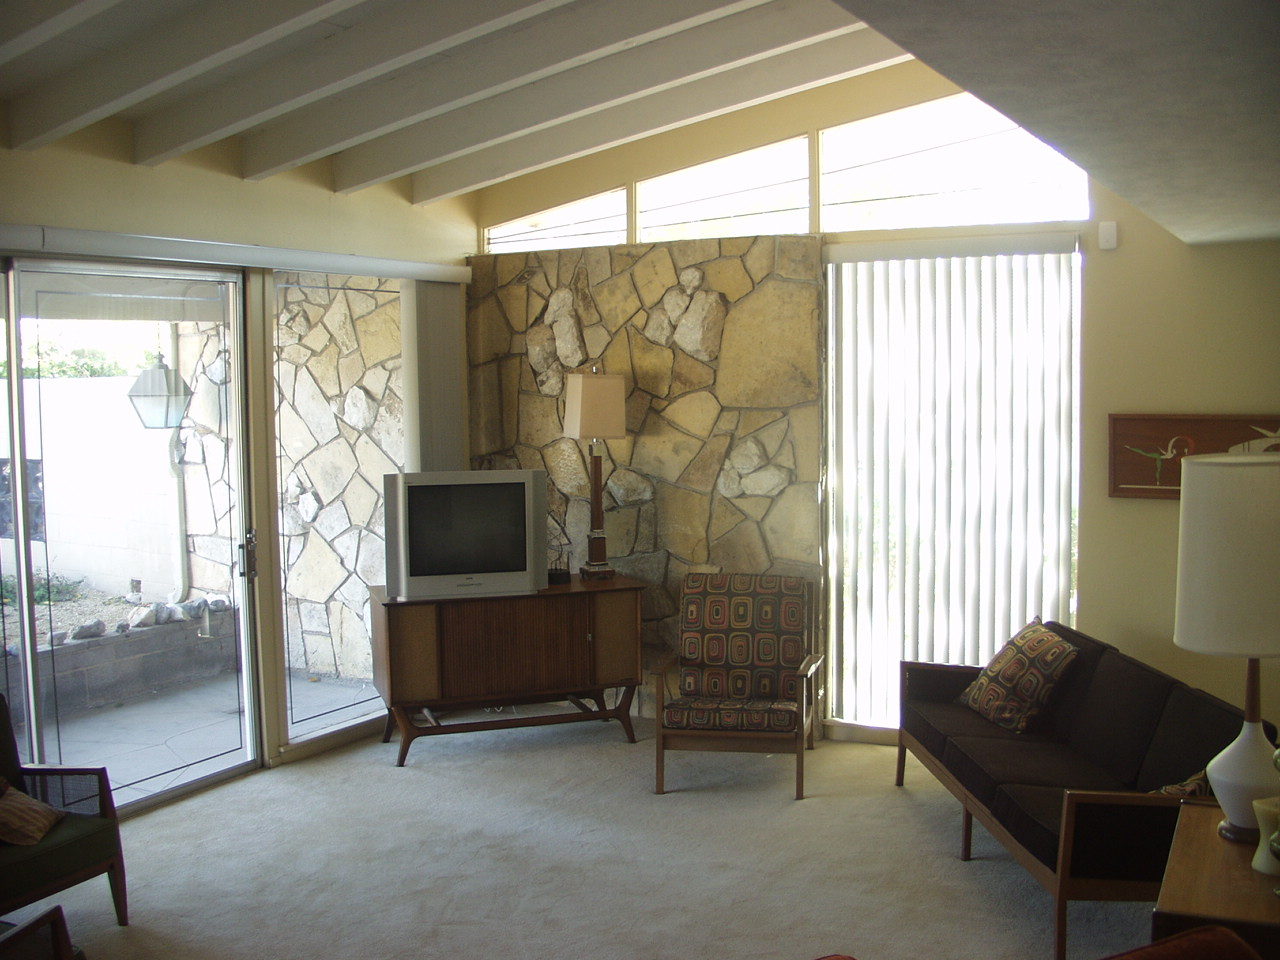 mid century modern windows big mid century modern the triangular windows above normal wall space are called clear story windows this home uncle jacks very vintage vegas modern homes historic